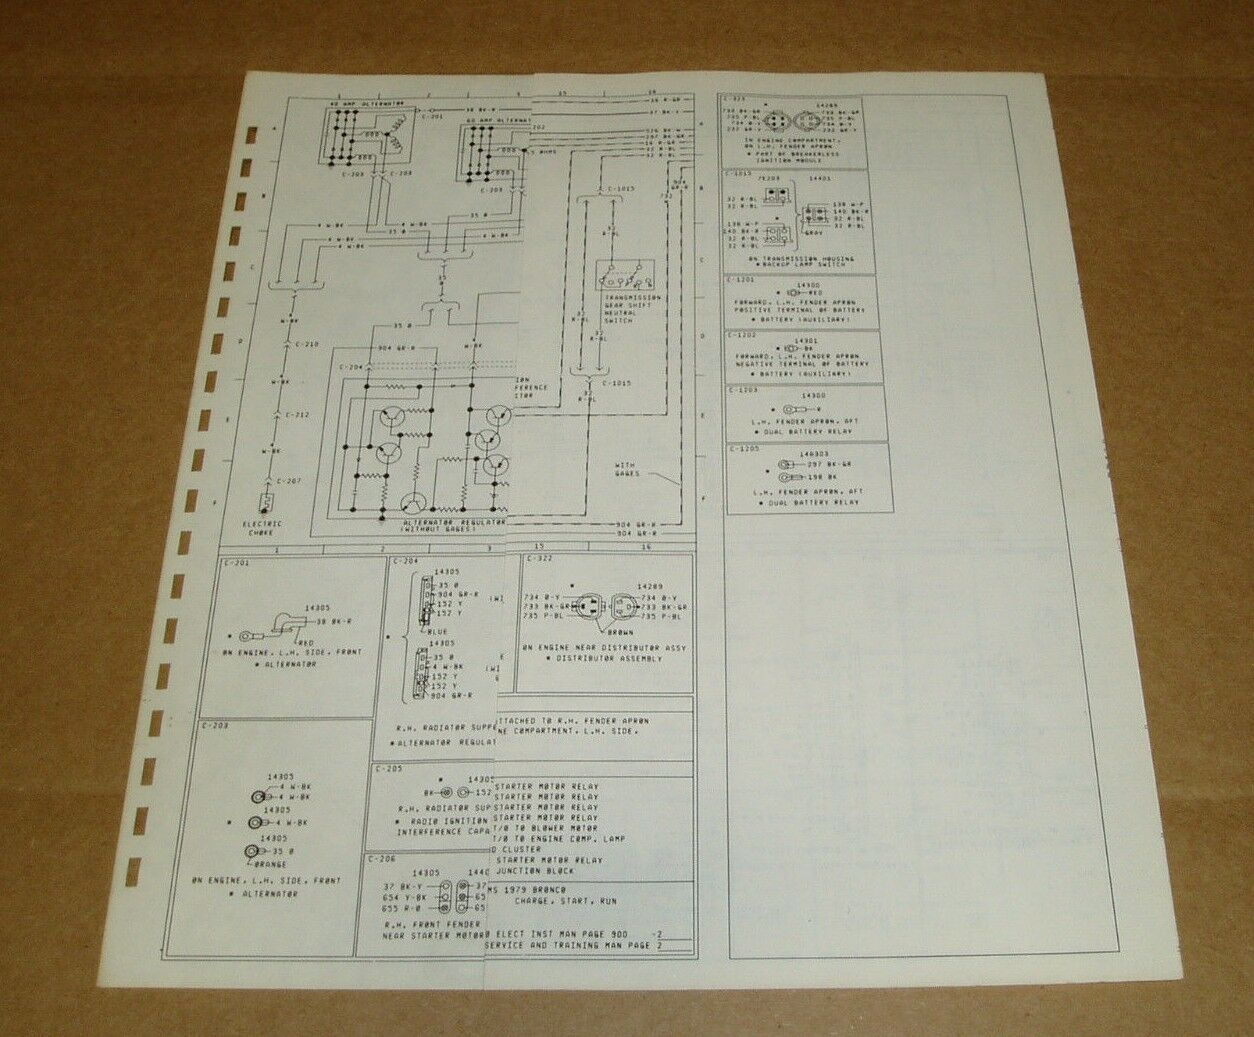 1978 Ford C600 C700 C800 C900 7000 Wiring Diagram Schematic Sheet Service Manual 1 Of 2only Available